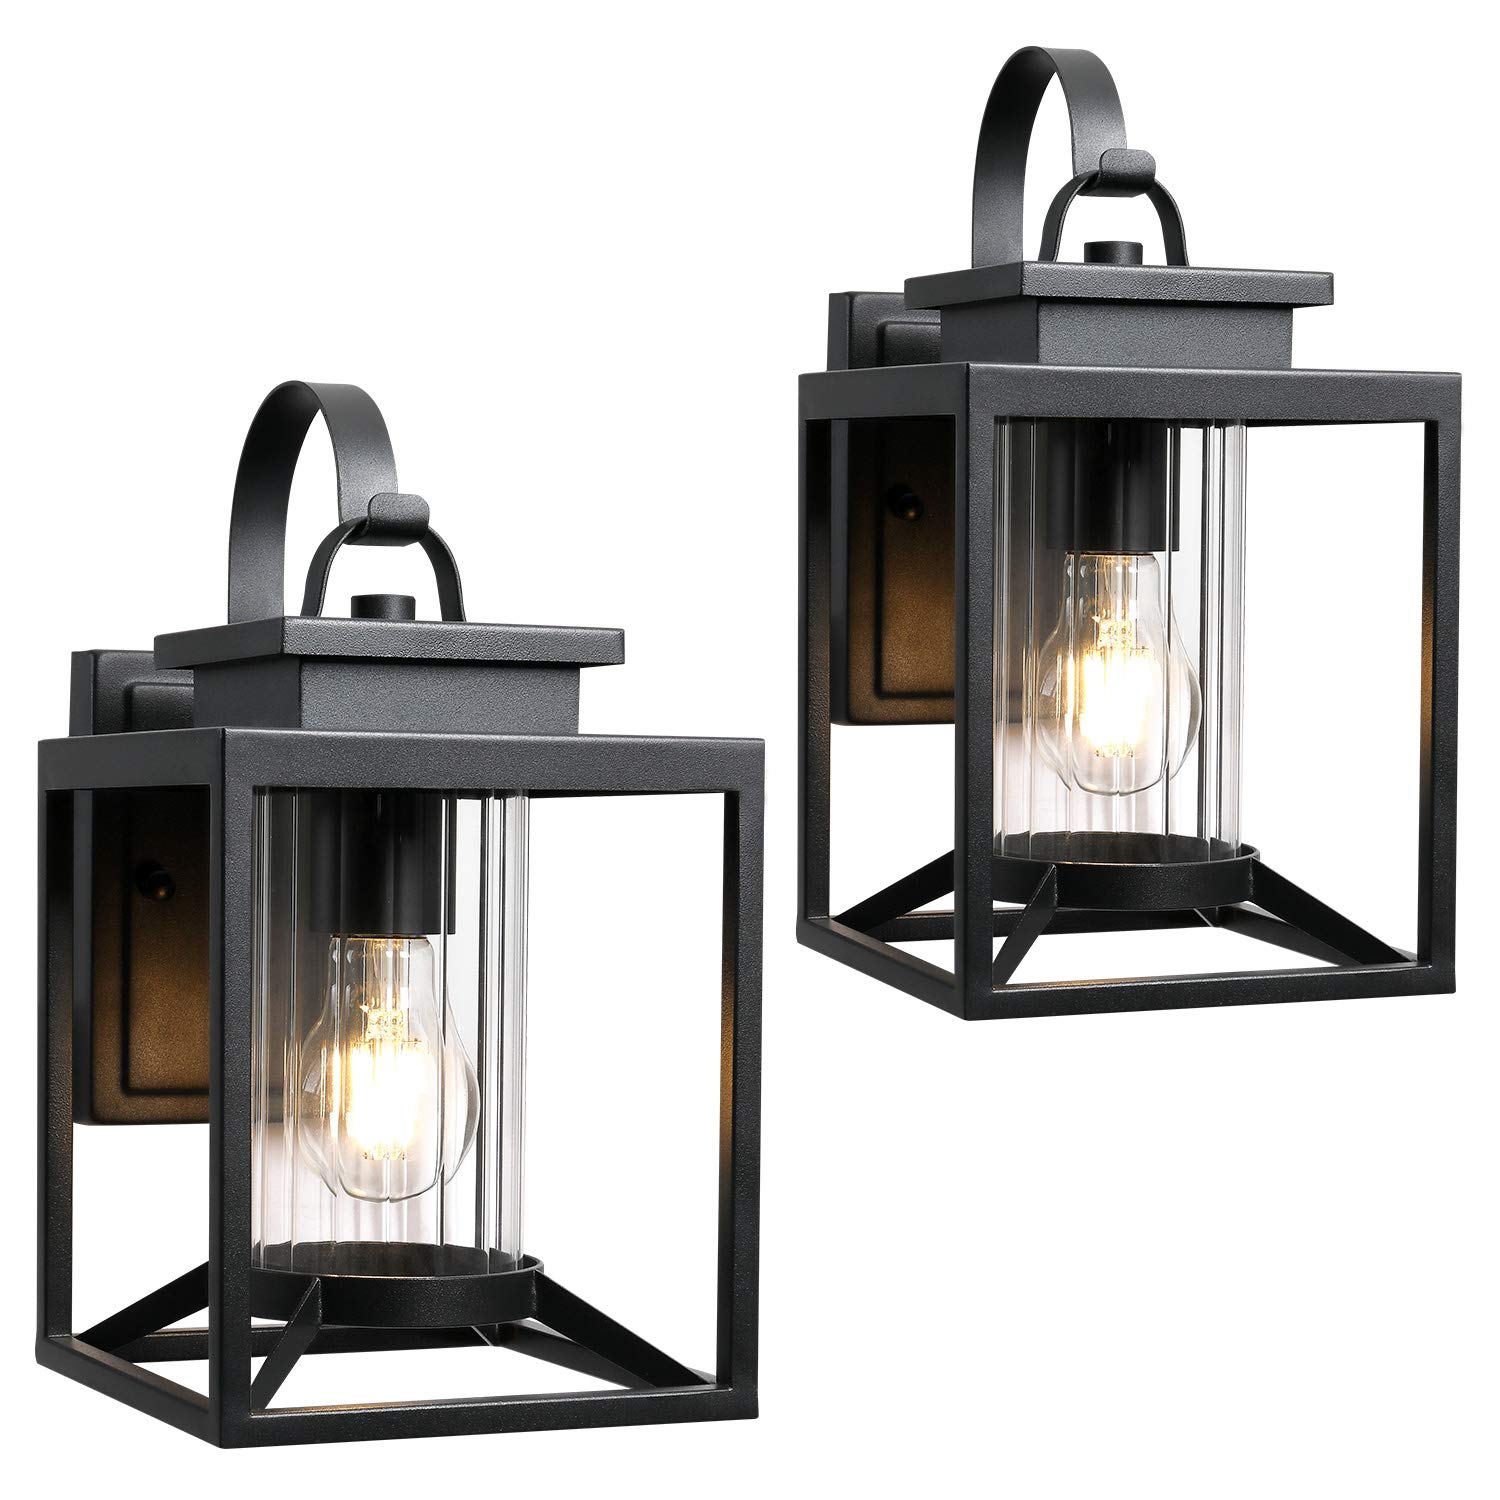 Osimir Outdoor Wall Light 2 Pack Modern Farmhouse Outdoor Wall Sconce Lighting In Black Finish With Cylinder Glass 2353 1w 2pk